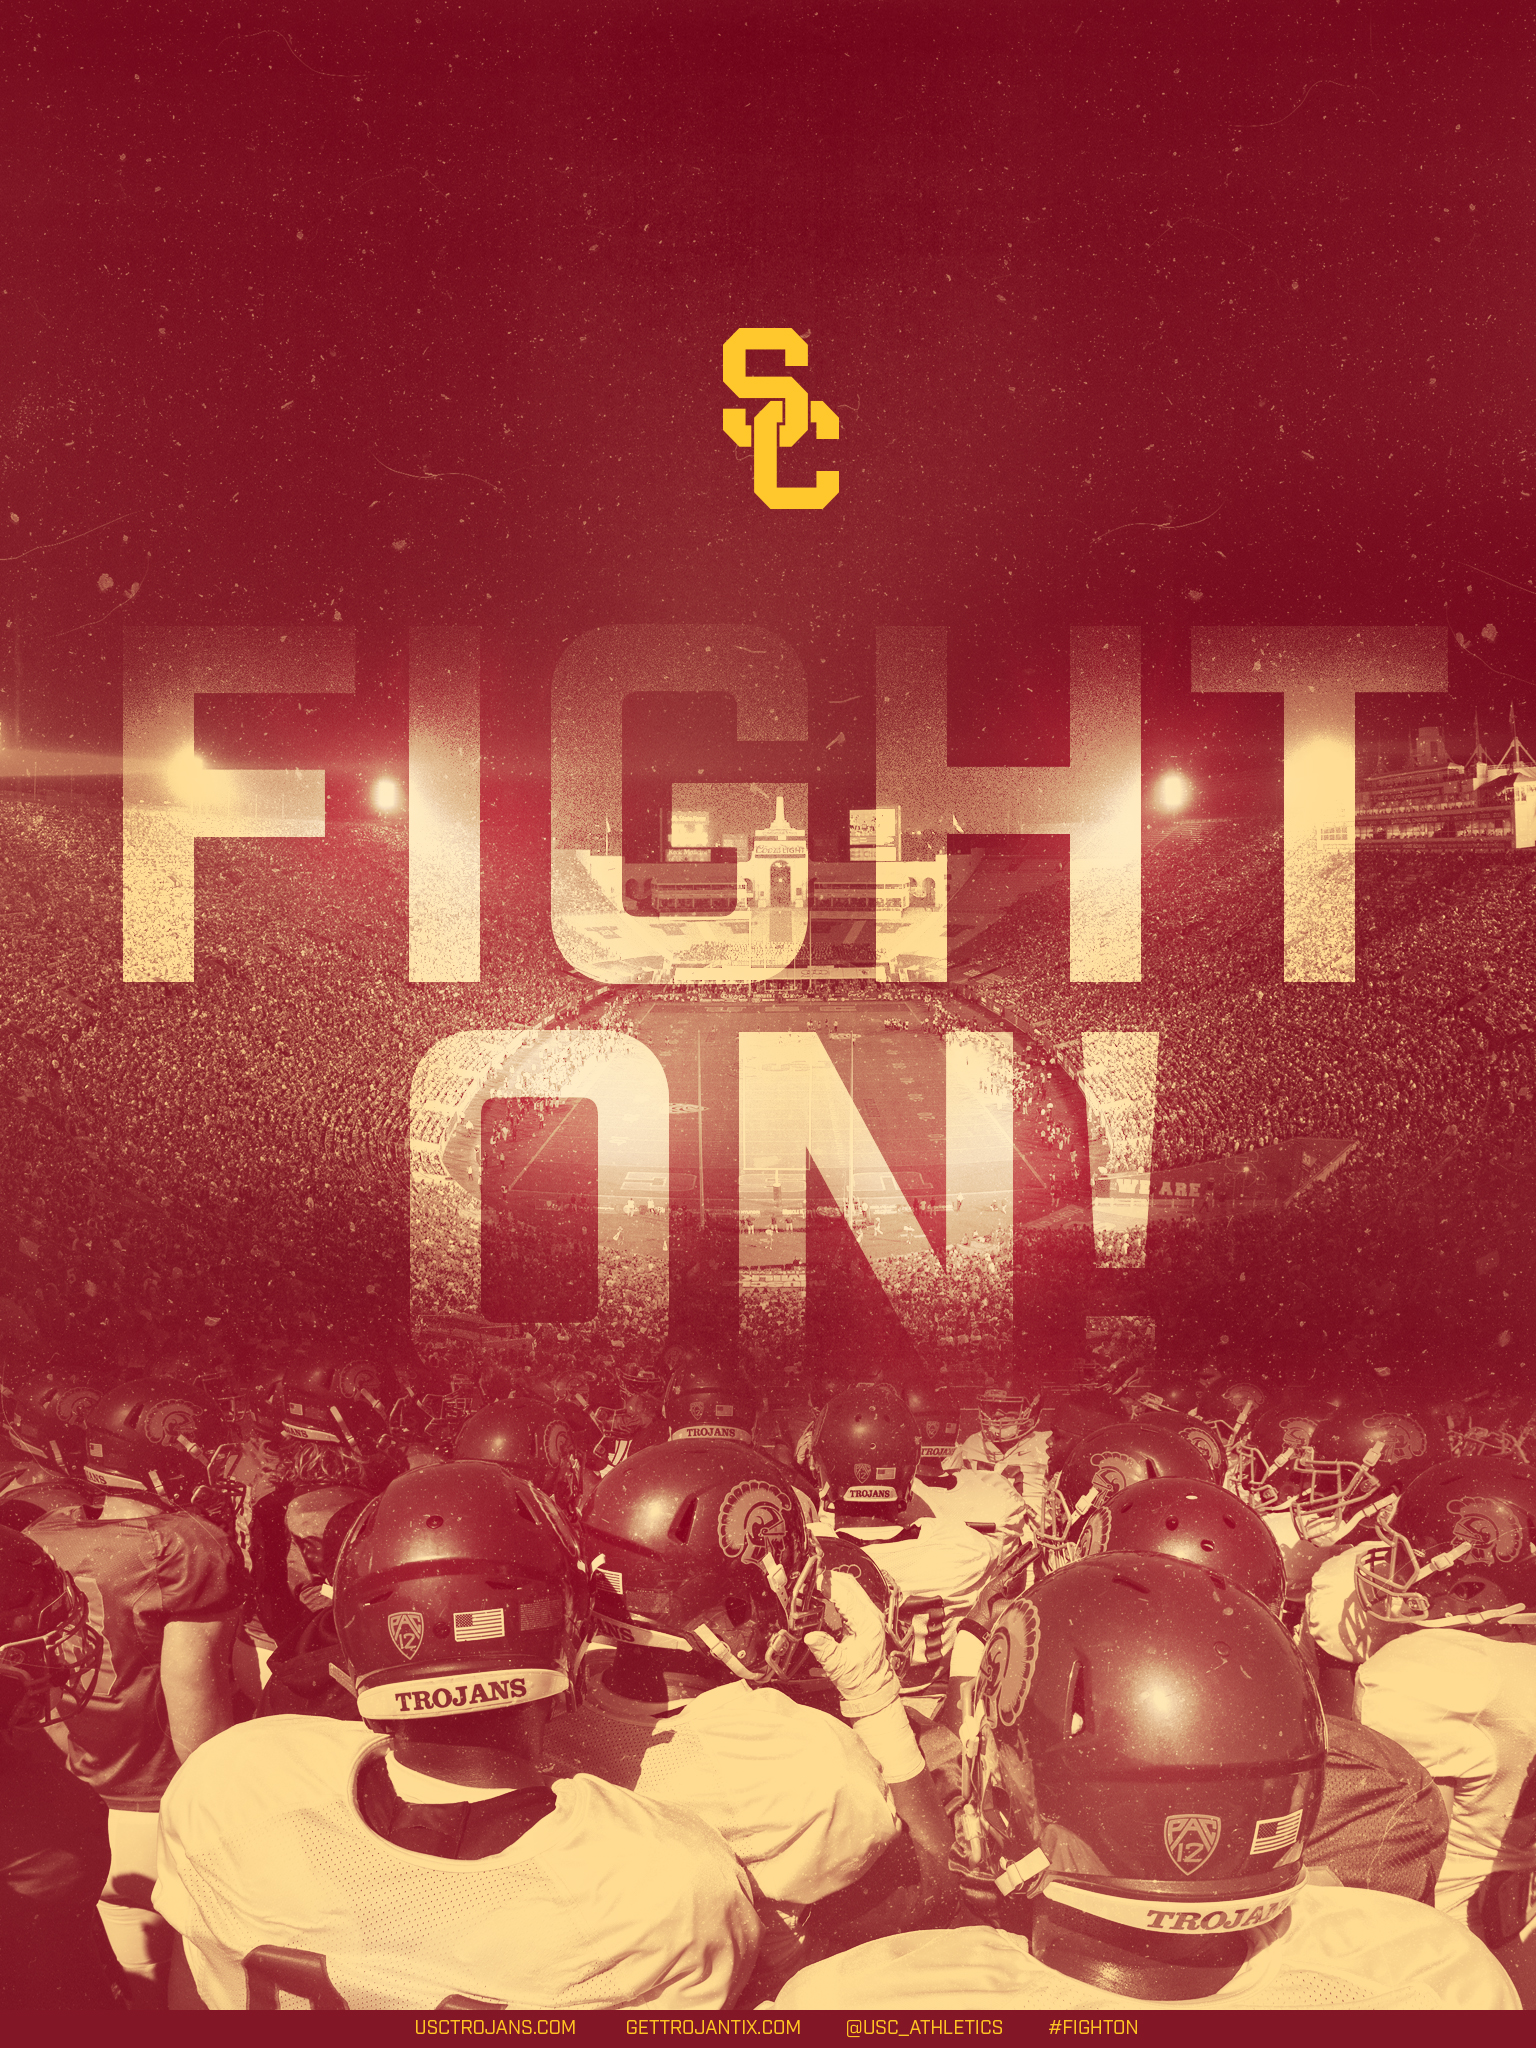 Cool Quotes Wallpaper Iphone Download Usc Football Wallpapers Gallery